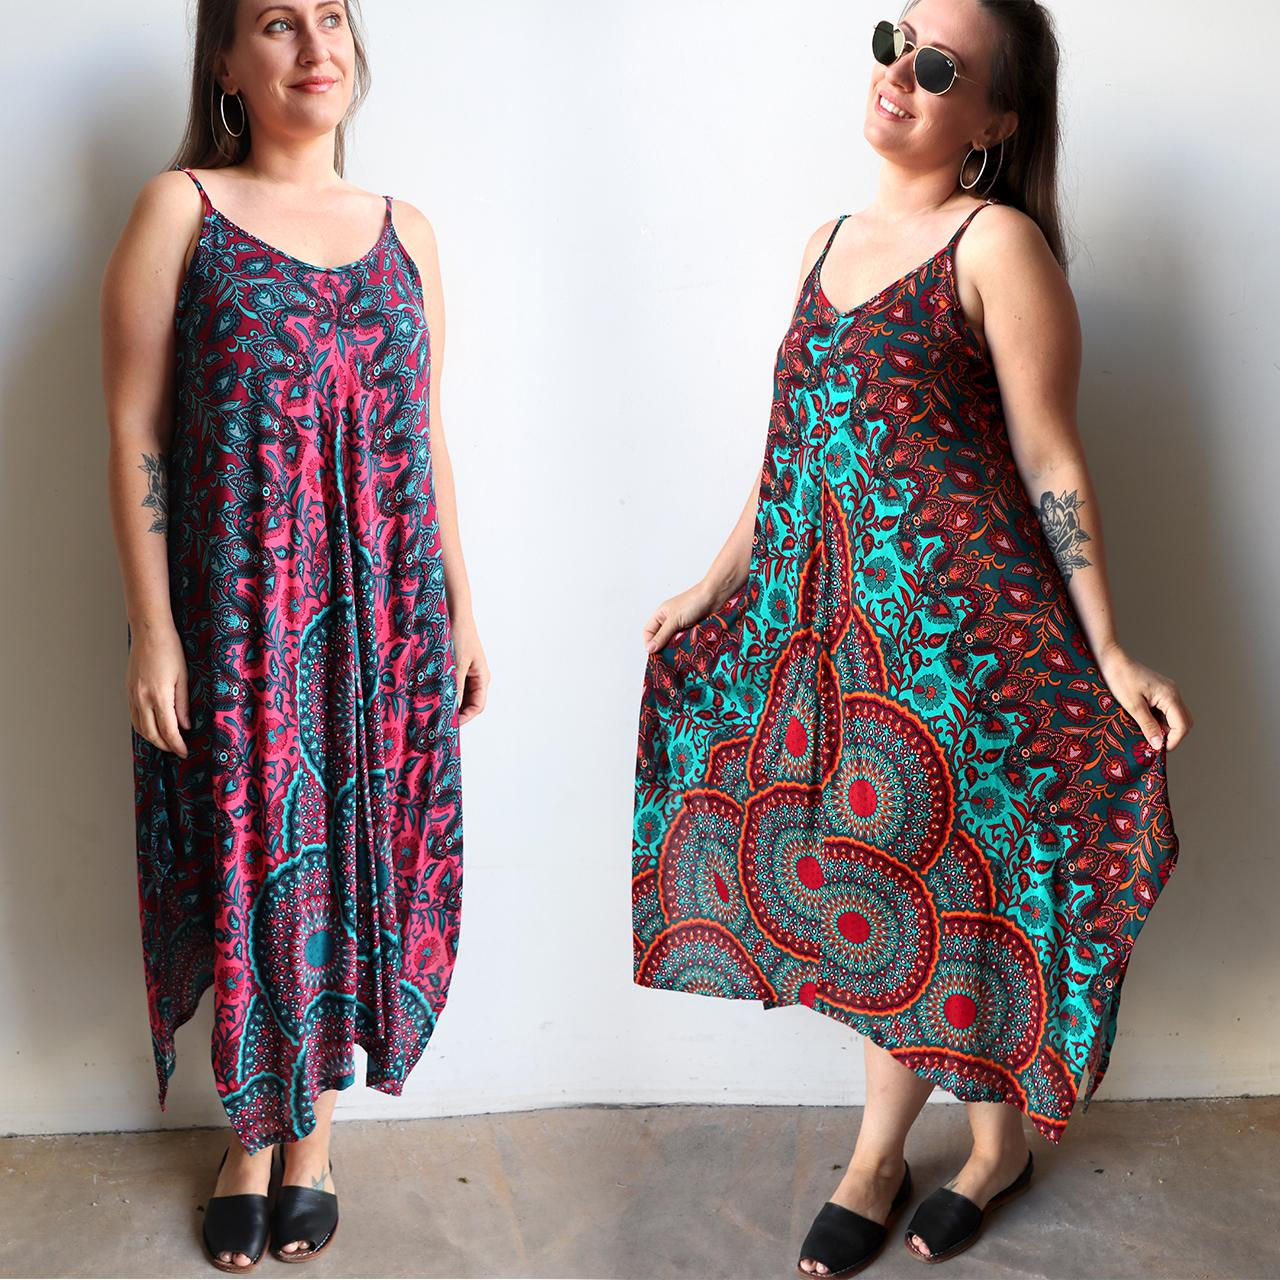 c0c96620e8 Womens flowing summer tunic dress with midi hankerchief hemline and  adjustable spaghetti straps in exotic print ...